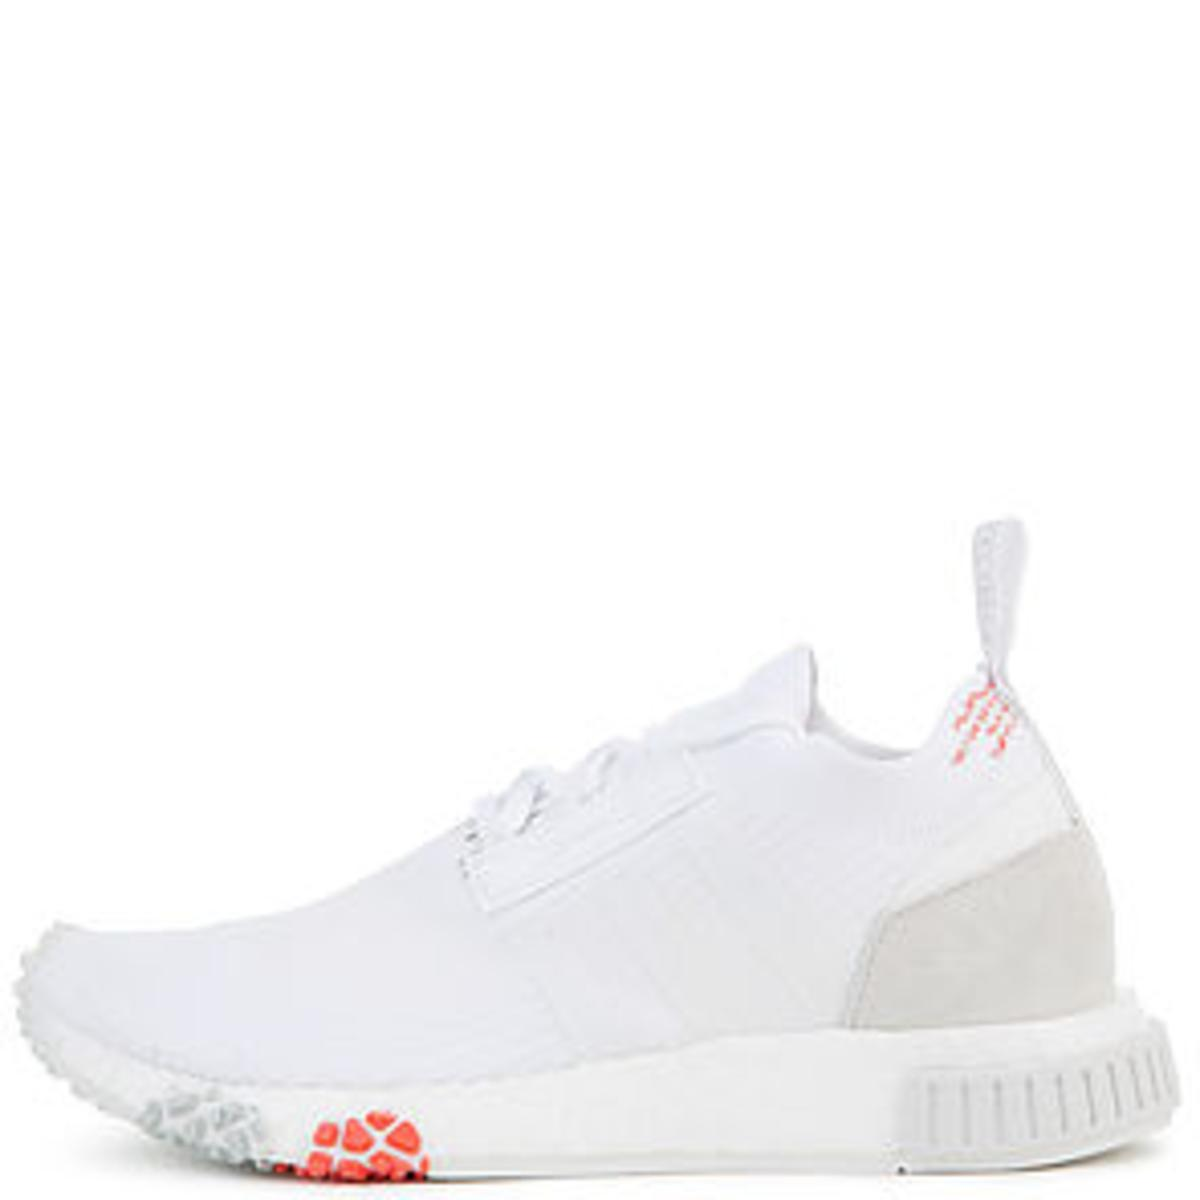 c1900f5be The Women s NMD Racer Primeknit in White and Trace Scarlet